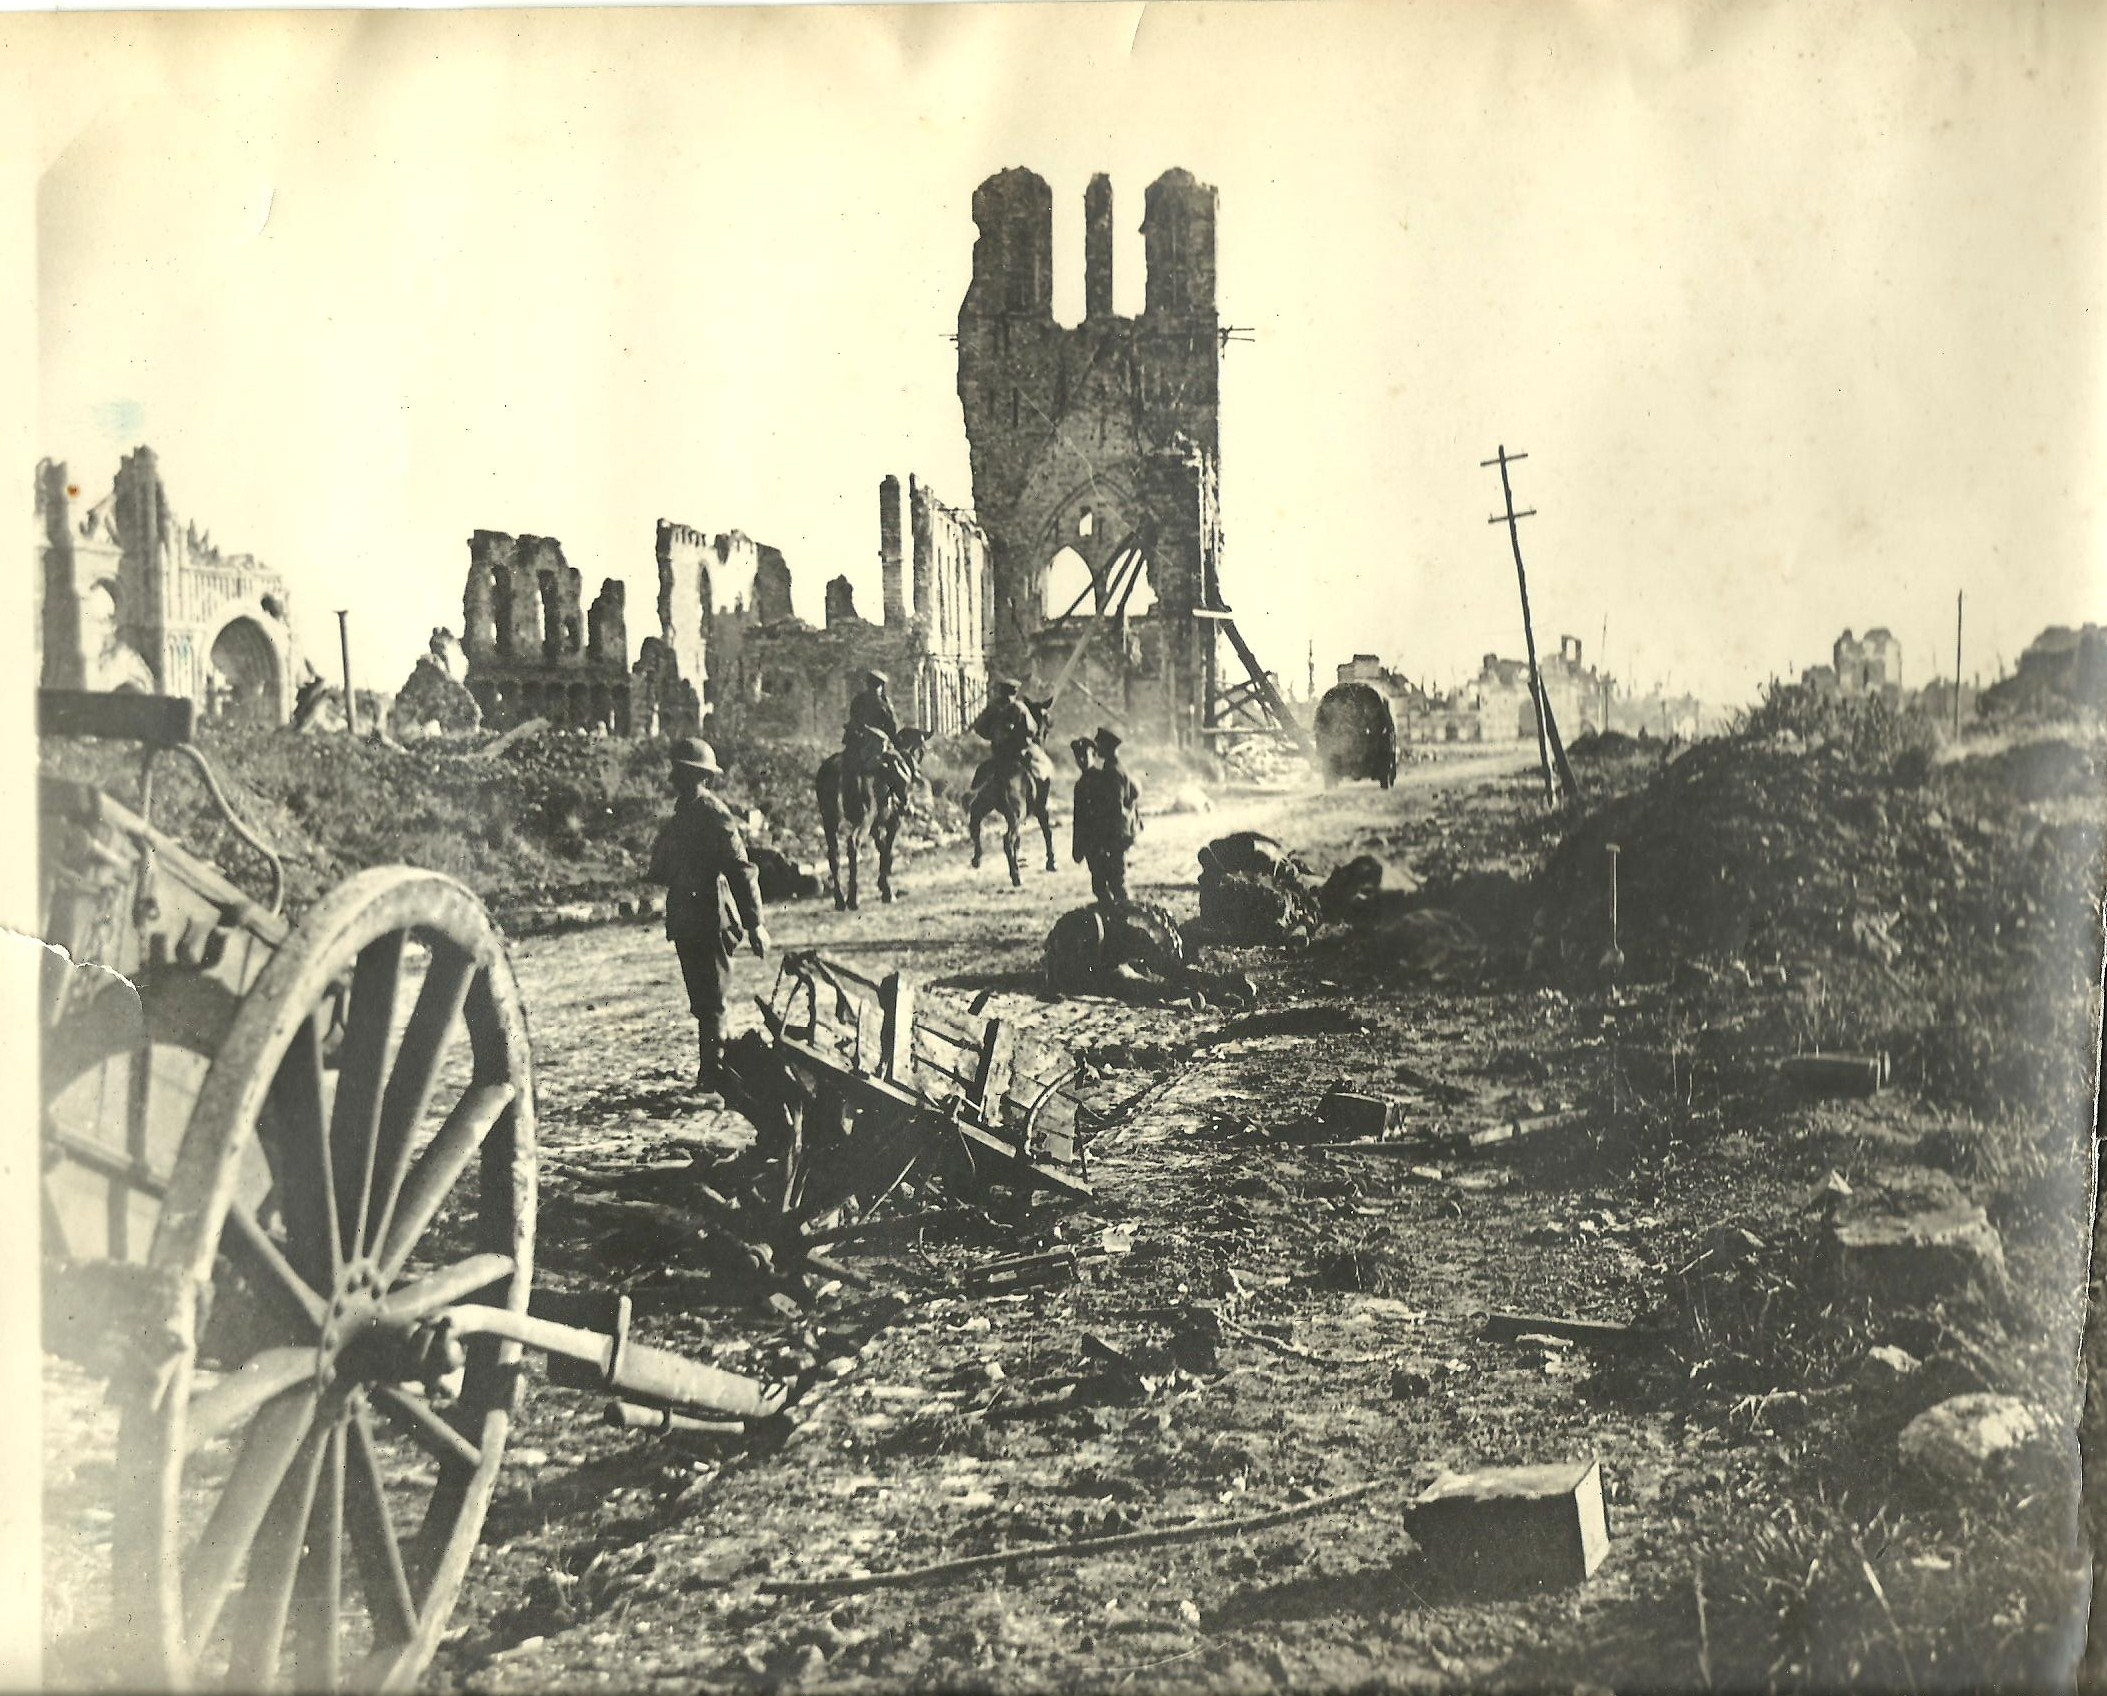 the devastation of world war i In verdun, remembering the lessons of world war i's devastation originally published october 24, 2018 at 8:00 am updated october 24, 2018 at 1:13 pm in 1916, roughly 300,000 lives were lost on.